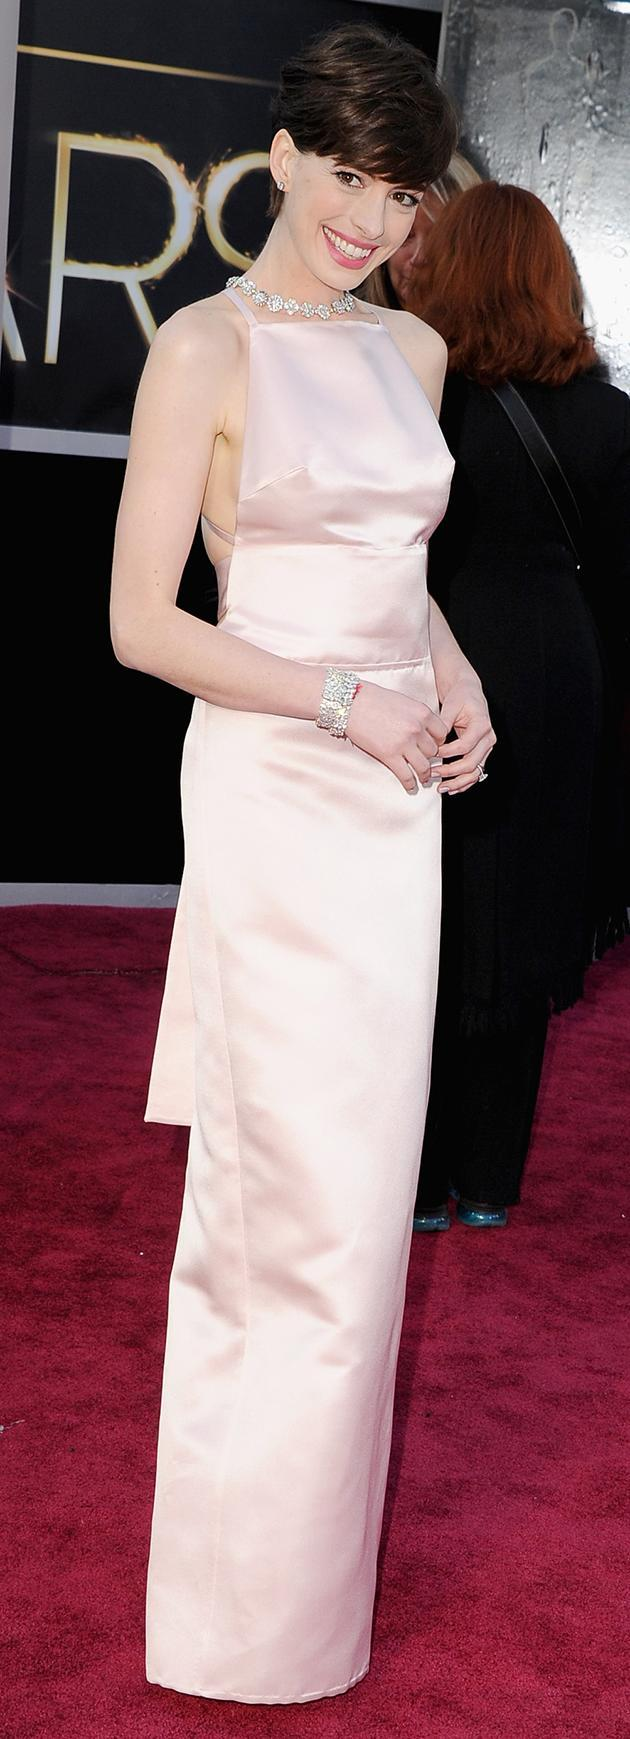 Anne Hathaway didn't wear a bra as she hit the Oscars 2013 red carpet. Copyright [Getty]